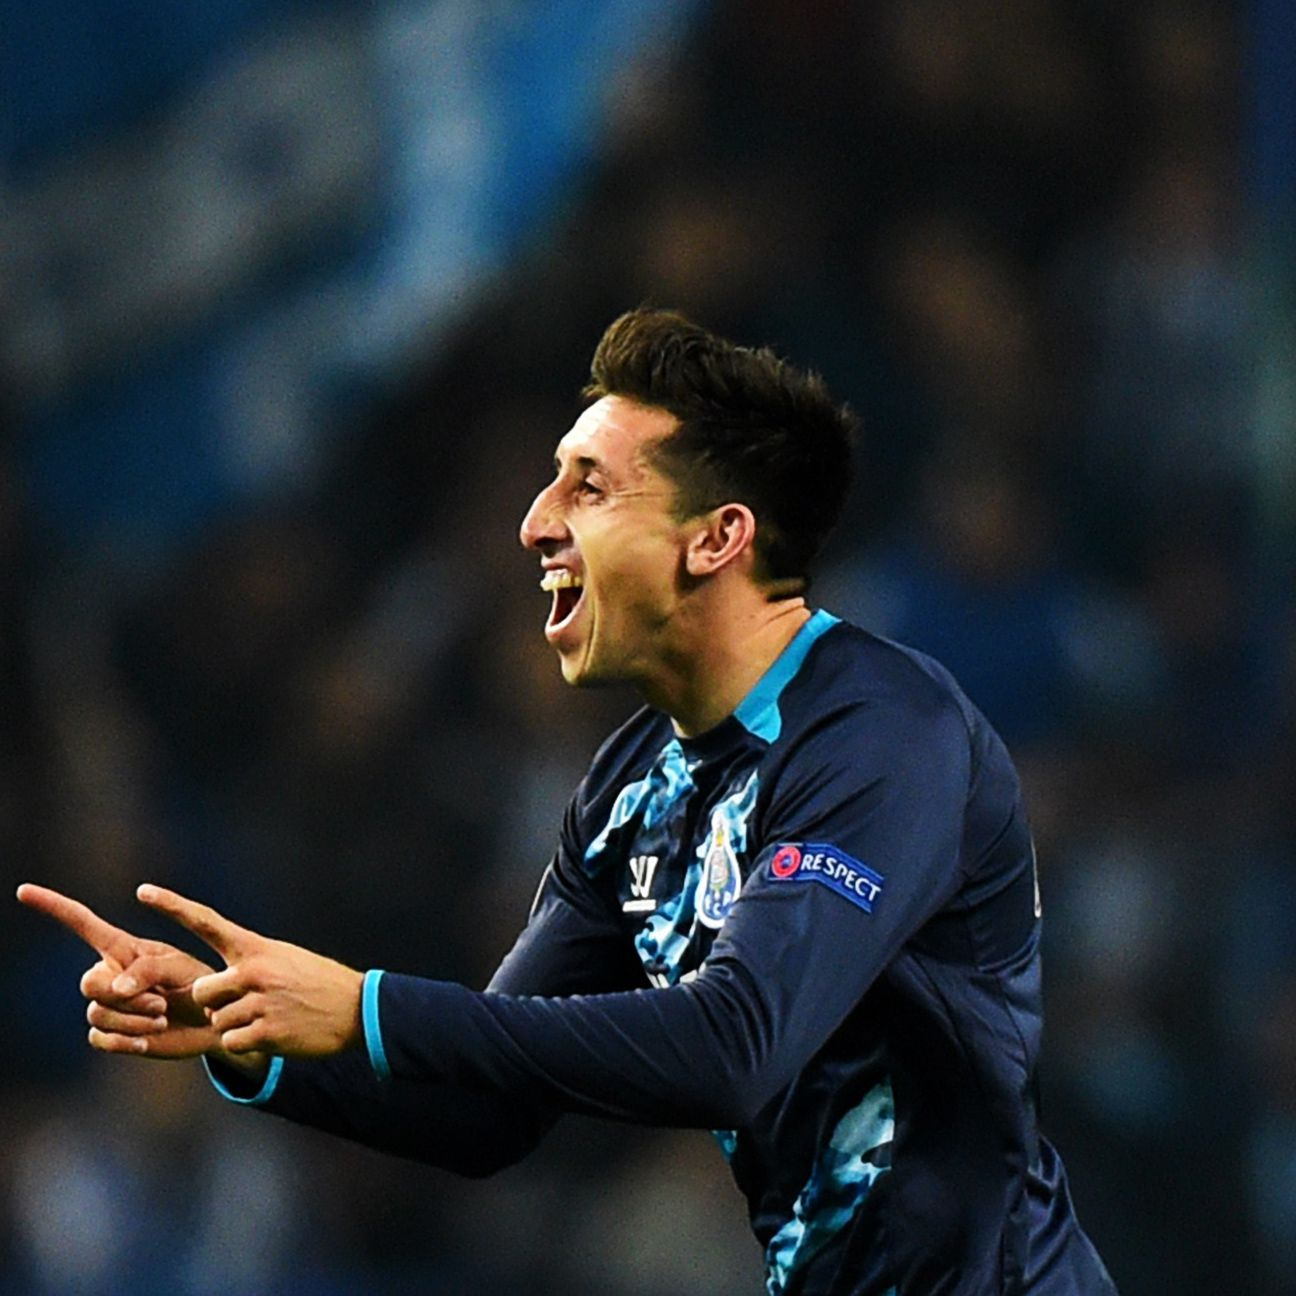 Hector Herrera's laser beam helped secure Porto's passage to the Champions League quarterfinals.